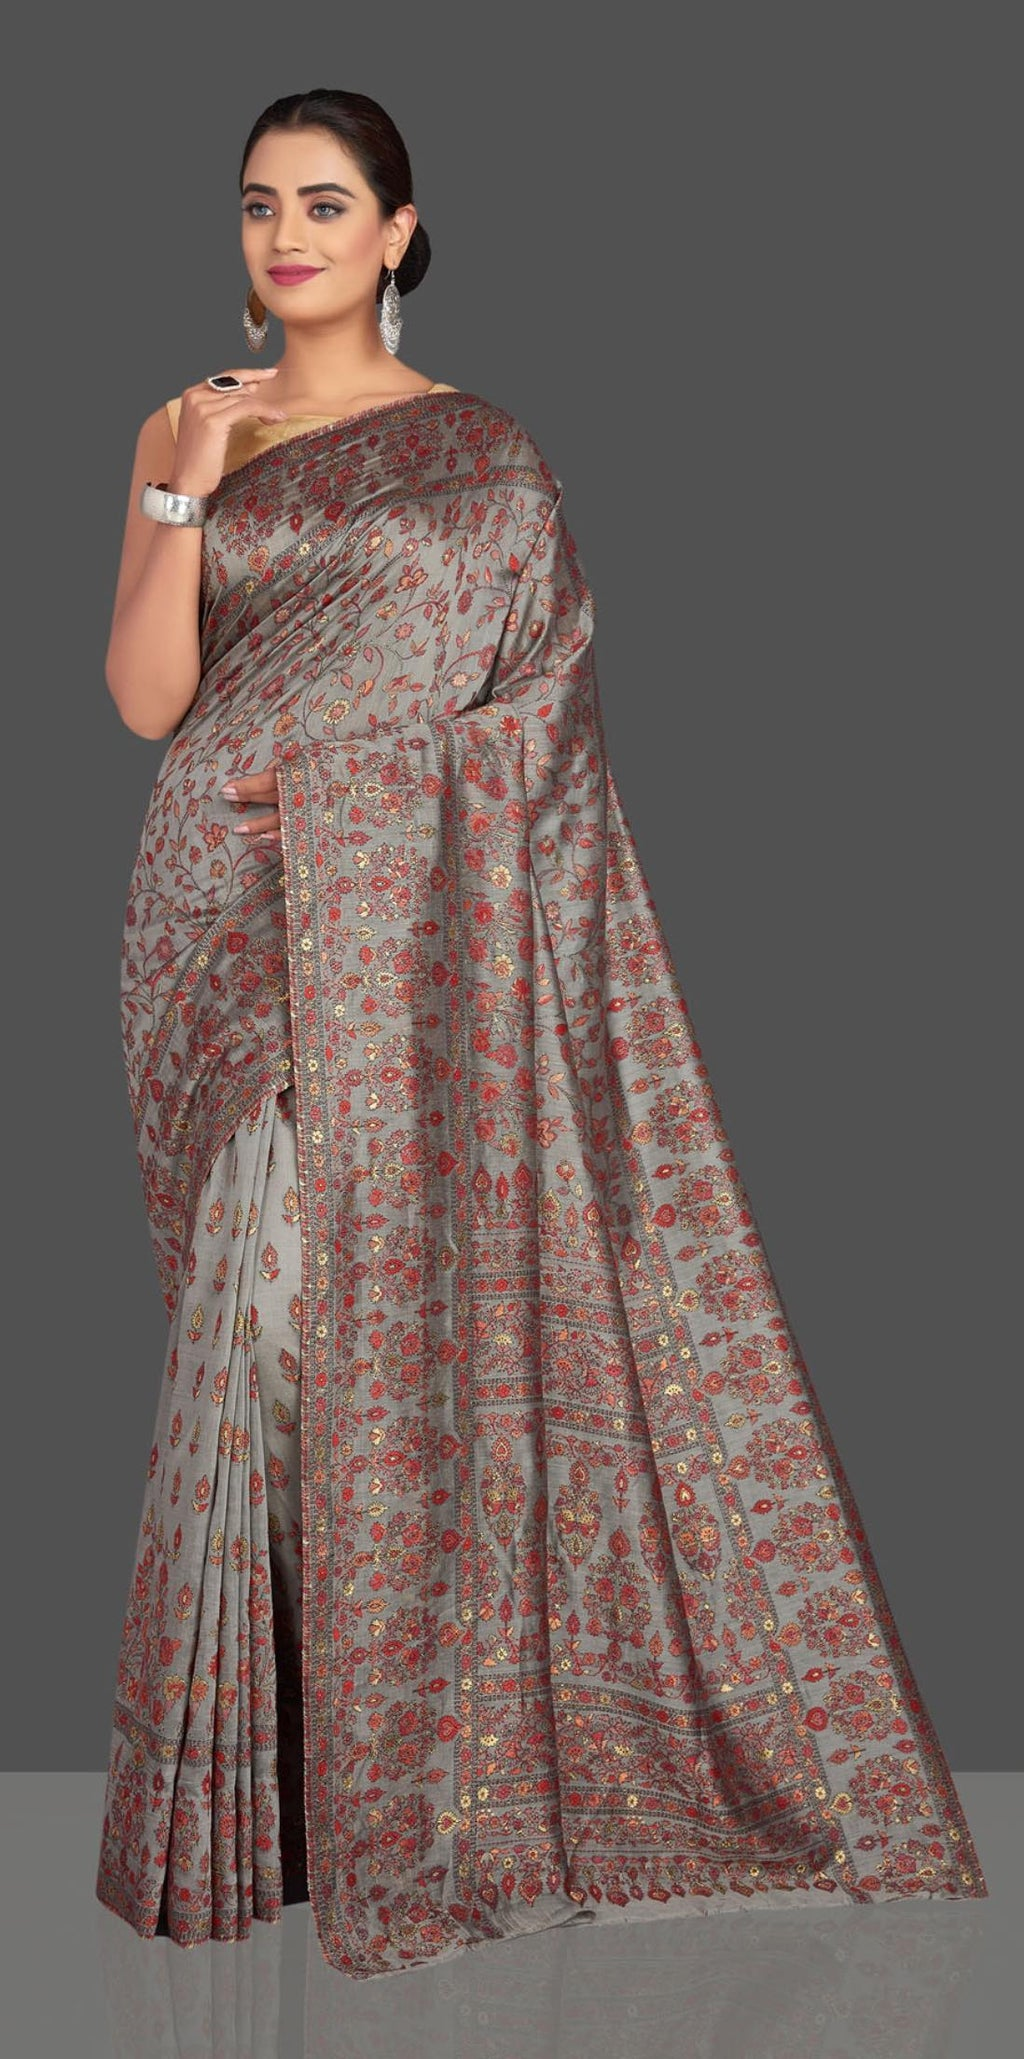 Buy stunning grey Kani weave tussar muga sari online in USA. Shop designer sarees, printed sarees, embroidered sarees, crepe sarees, handwoven silk sarees in USA from Pure Elegance Indian fashion store in USA.-full view